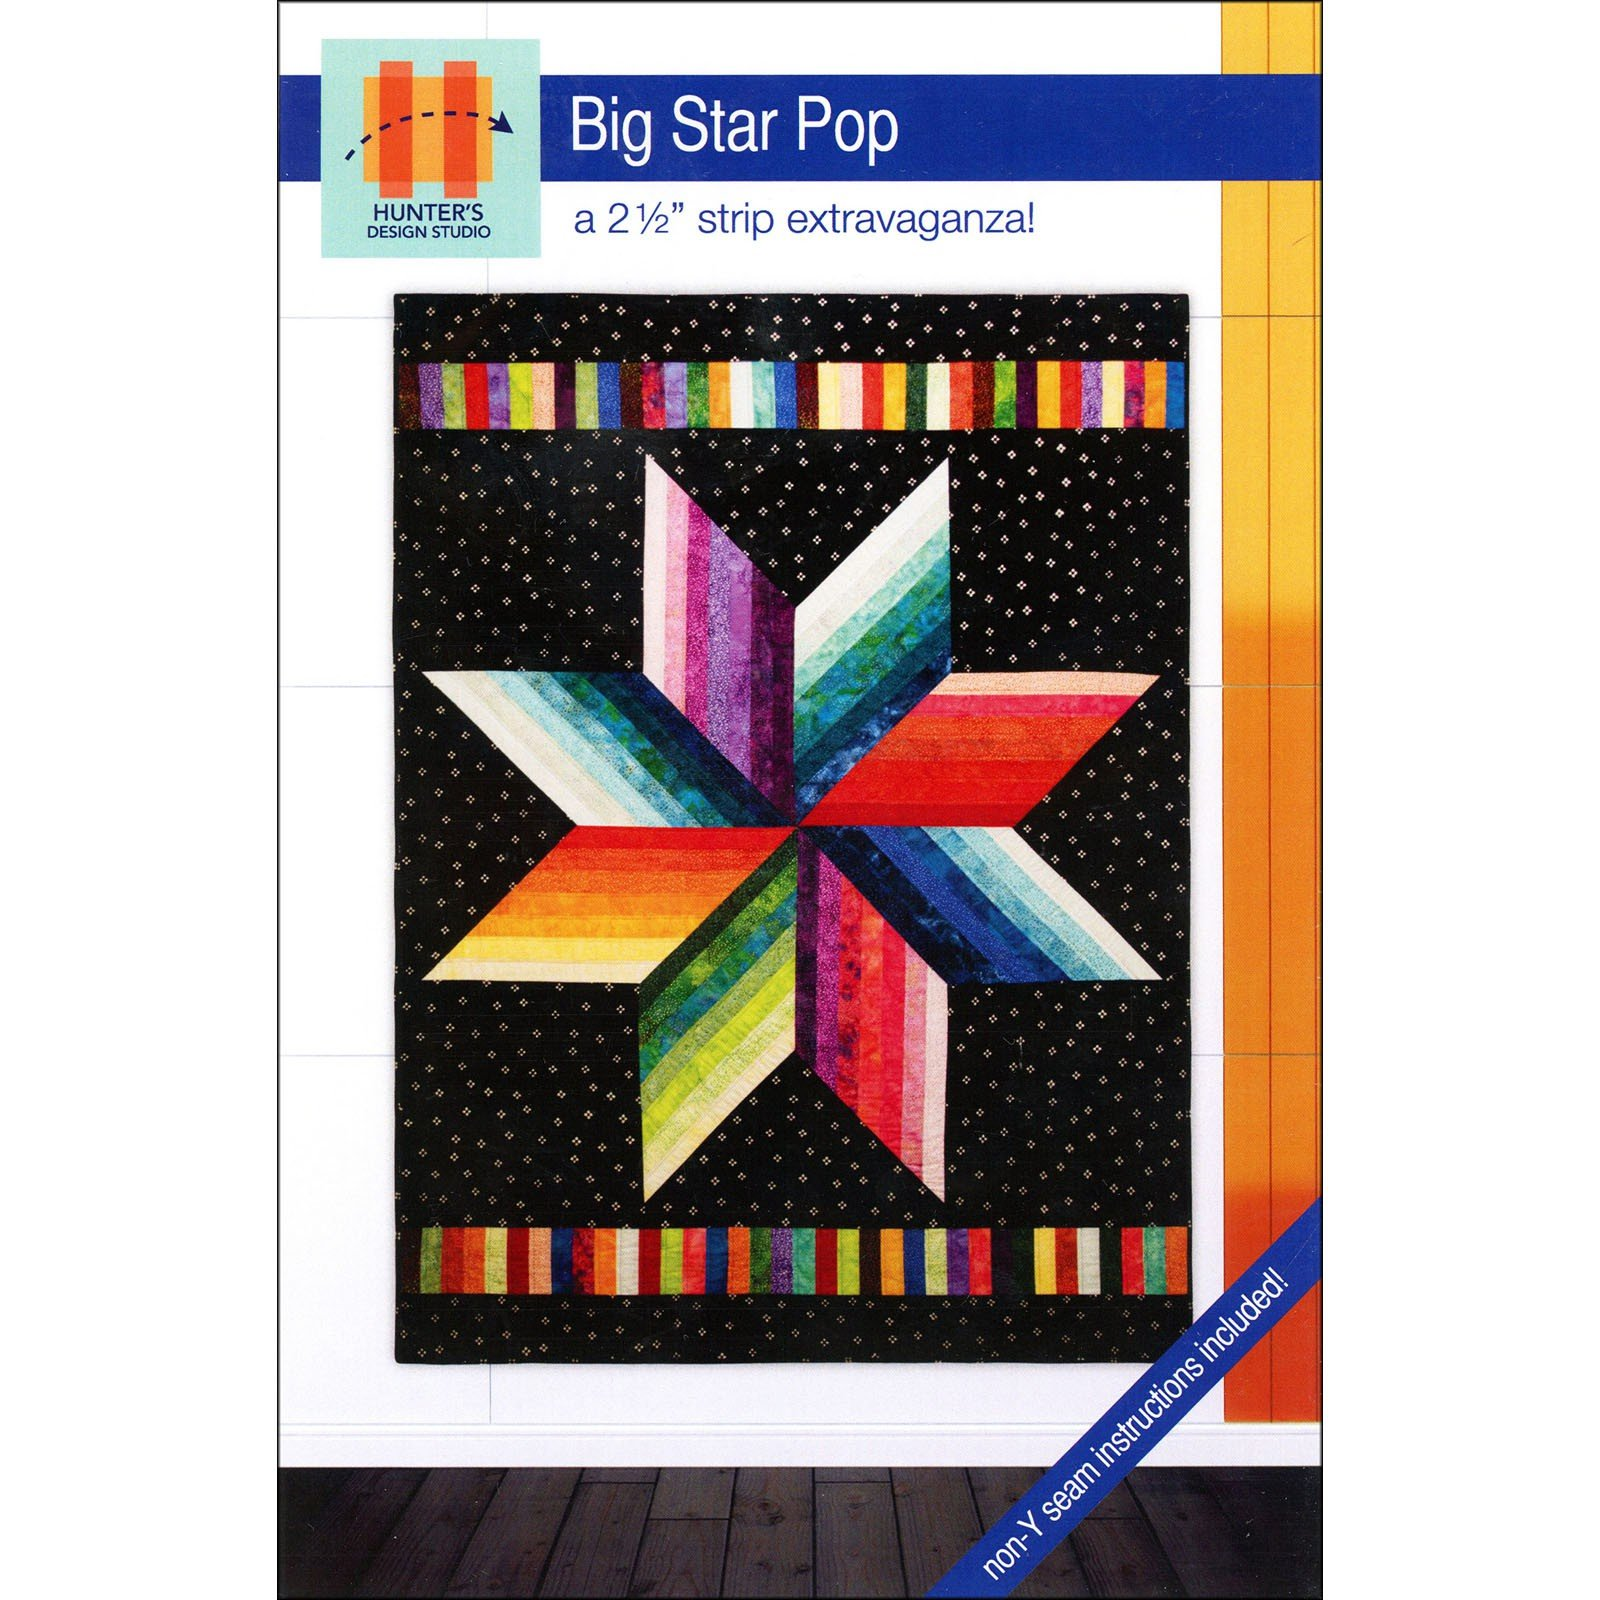 Big Star Pop